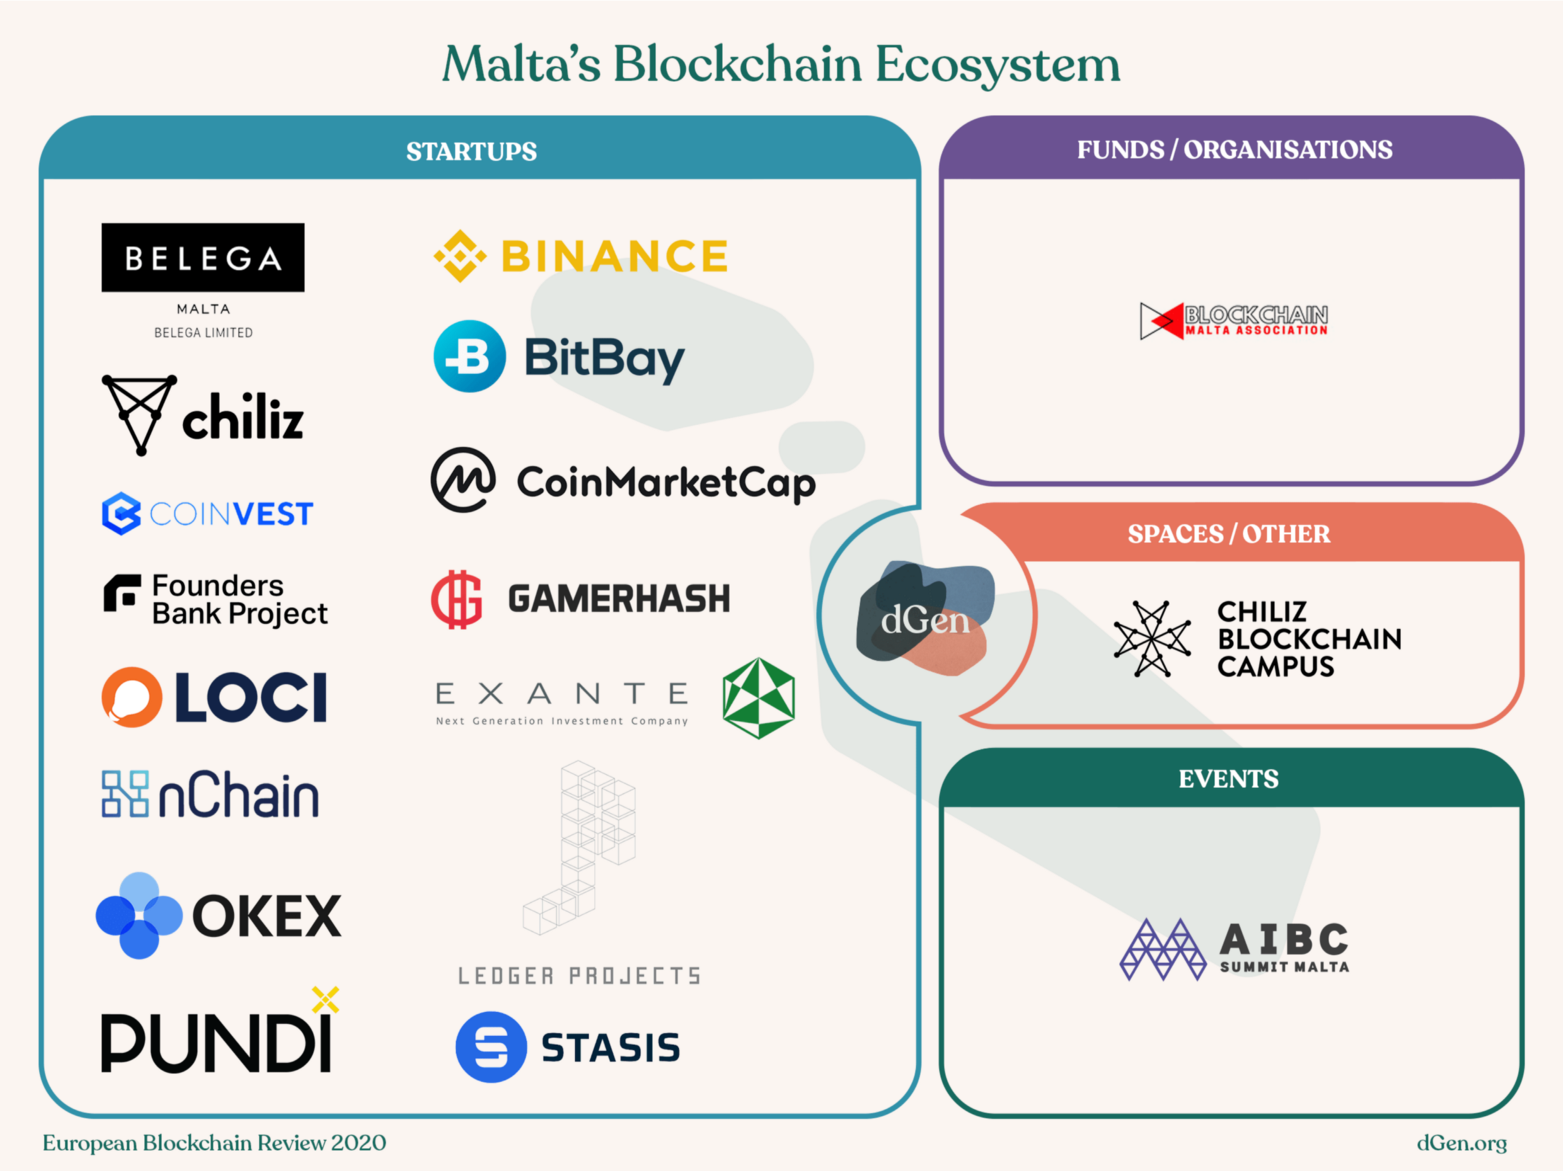 Map of Malta's blockchain ecosystem, with a space for startups, funds/organisations, spaces/other, and events.